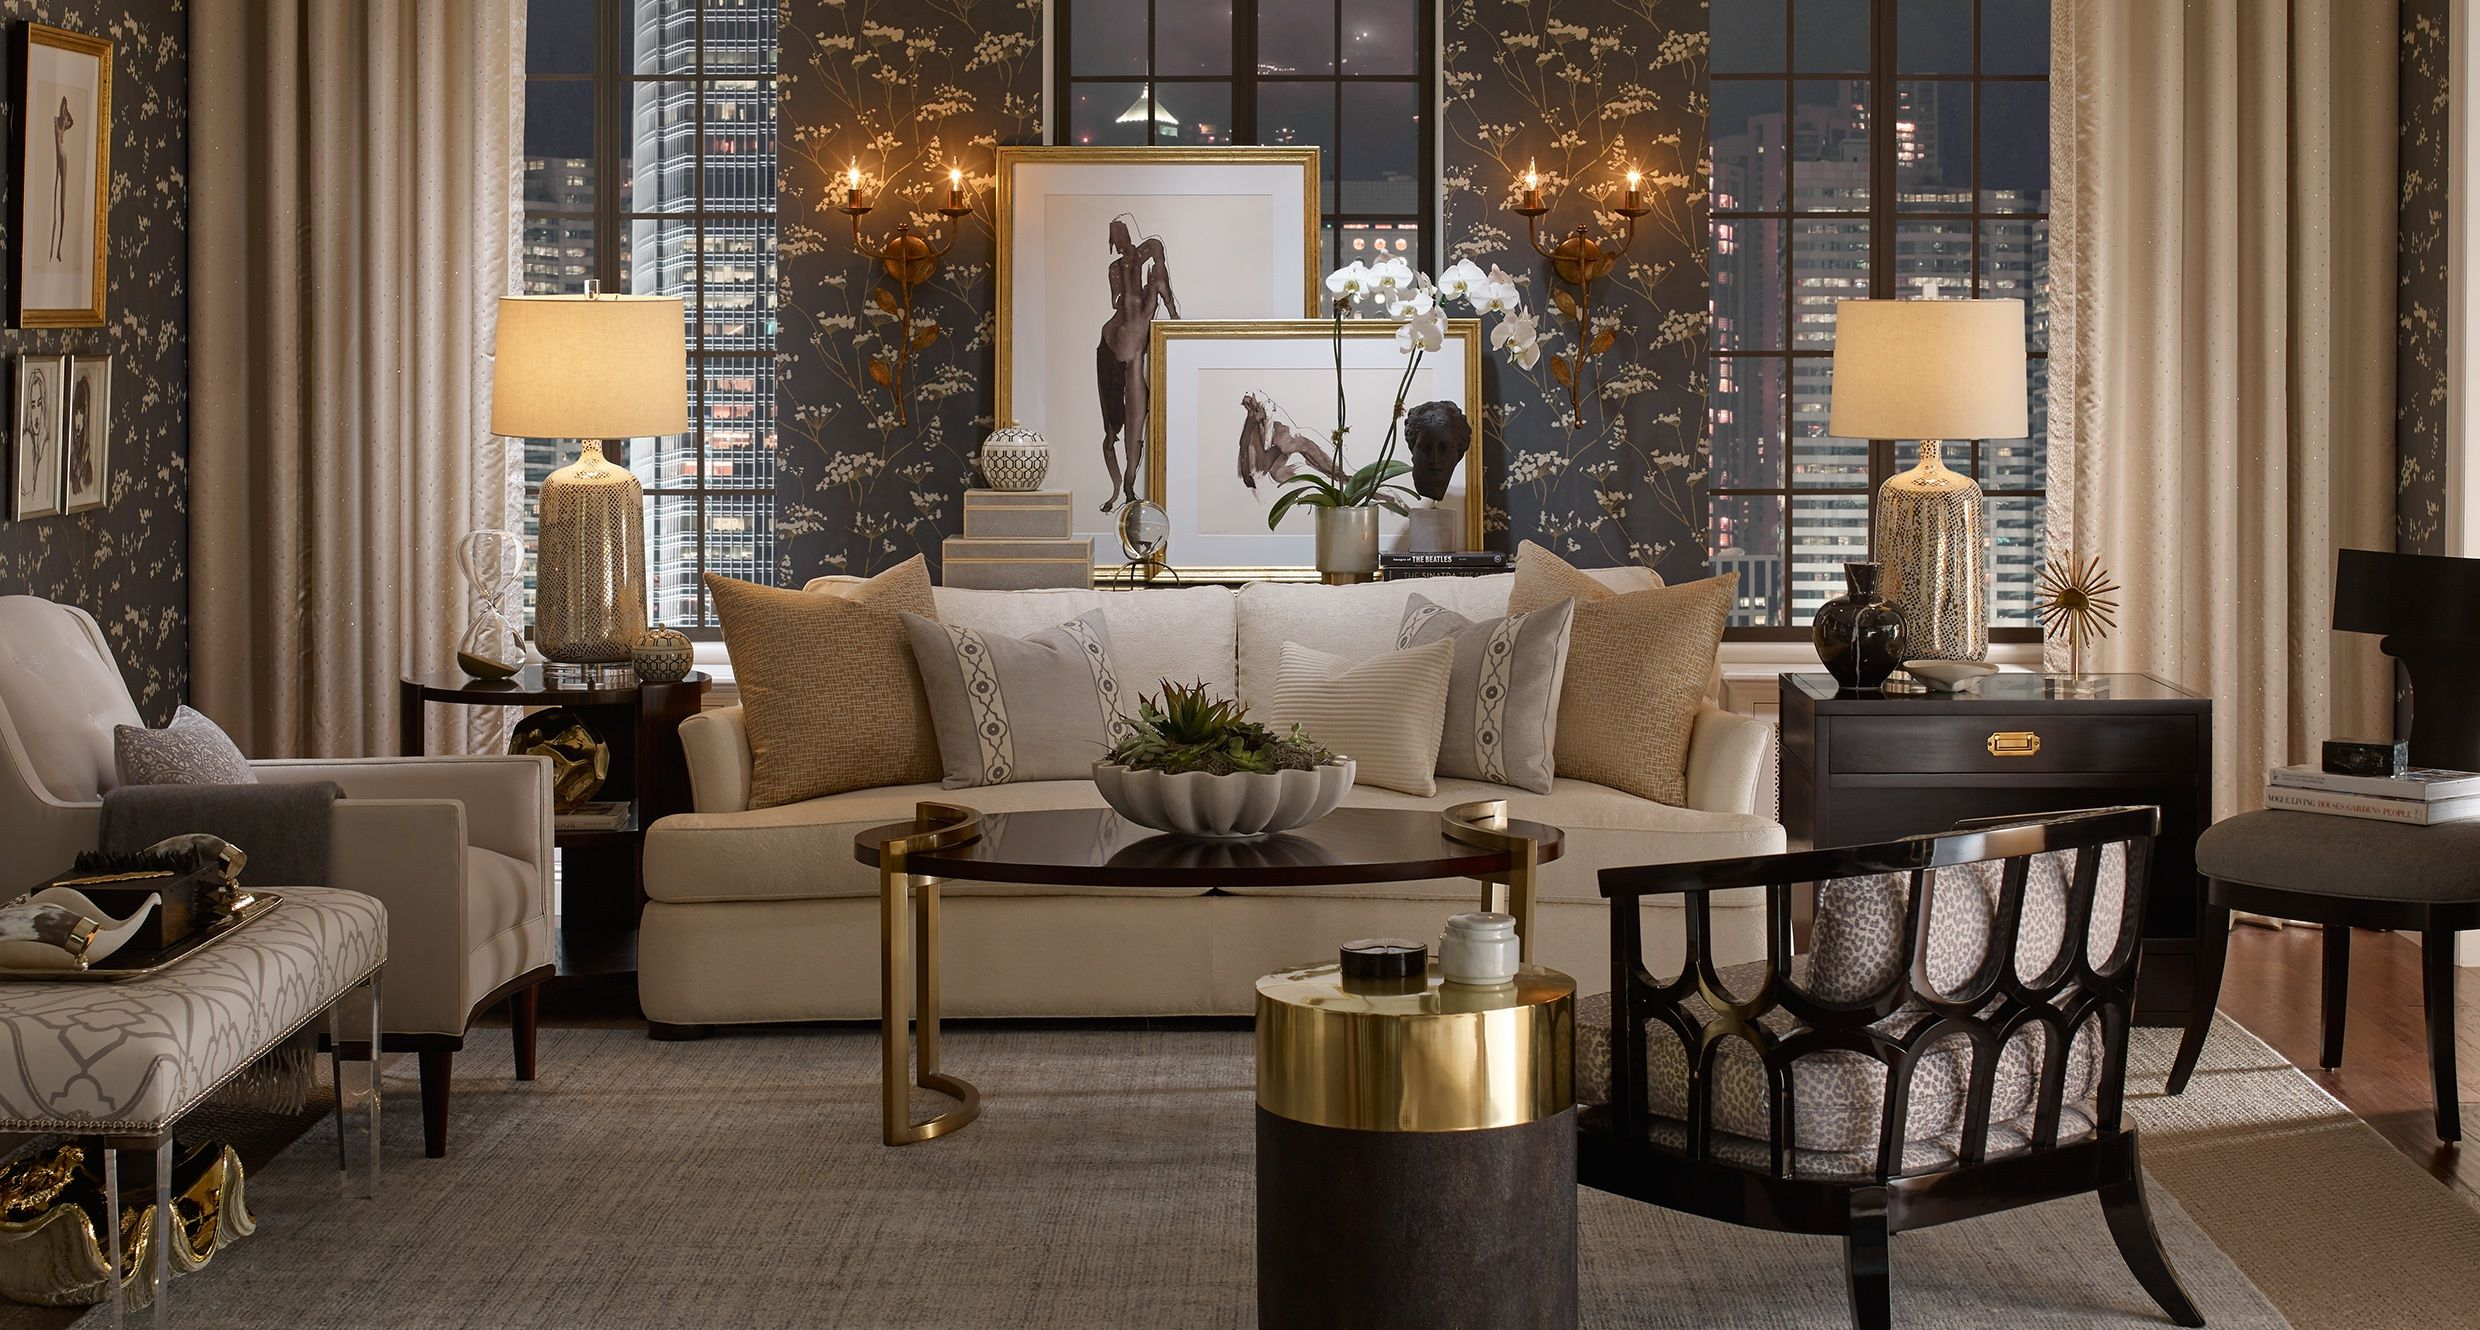 Design My Living Room Candice Olson's Park Avenue Parlor  Queen P's Decor Galore